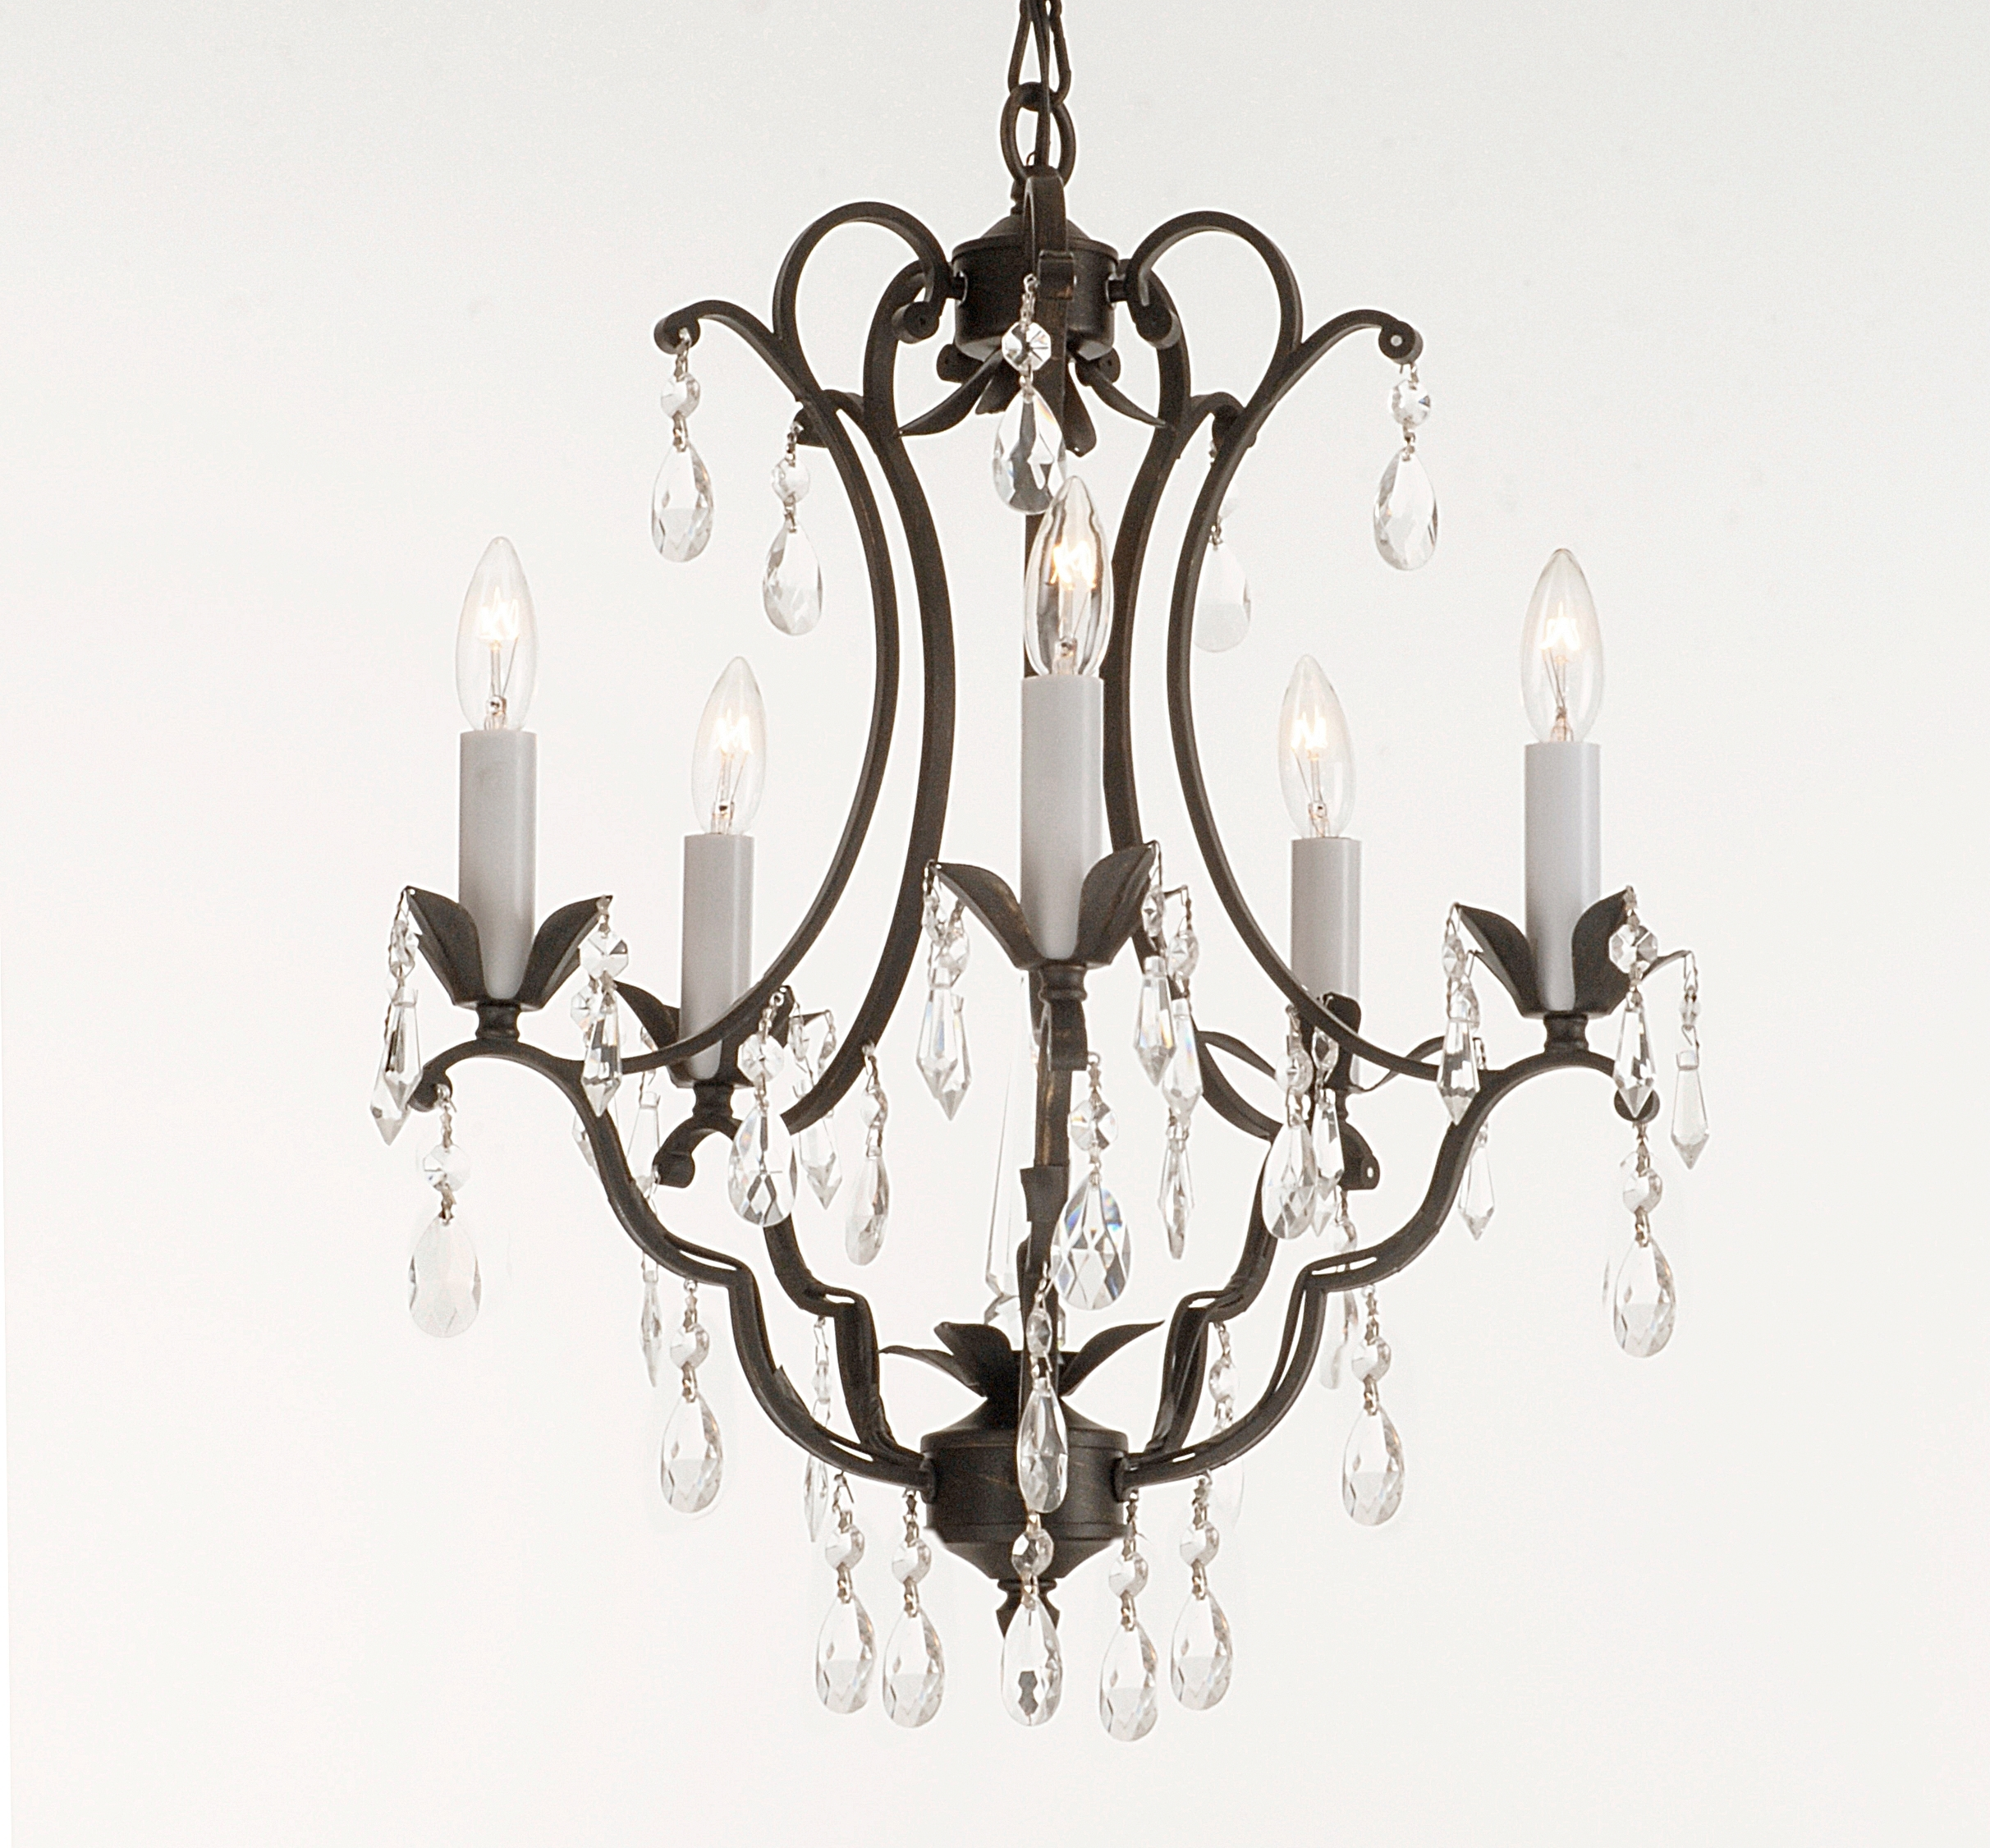 Vintage Black Chandelier With Fashionable Light : Furniture Vintage Look Modern Black Wrought Iron Chandeliers (View 11 of 15)